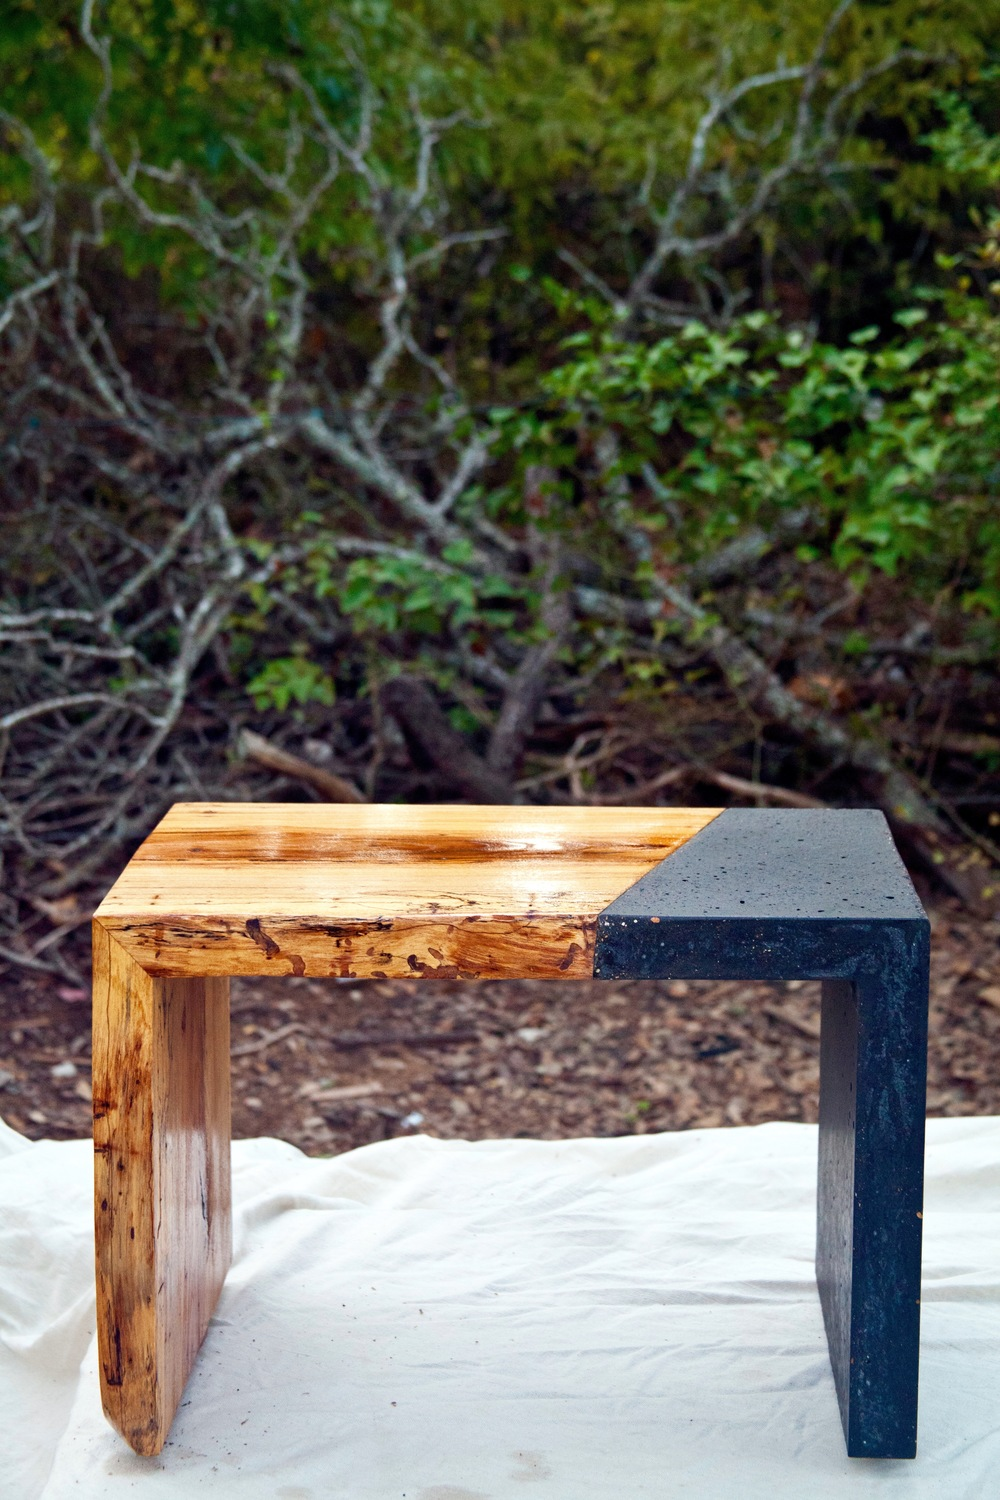 For This Project We Used Spalted Pecan And Combined It With Some Concrete,  Dyed With Charcoal For Contrast, To Create This Simple And Elegant End Table .